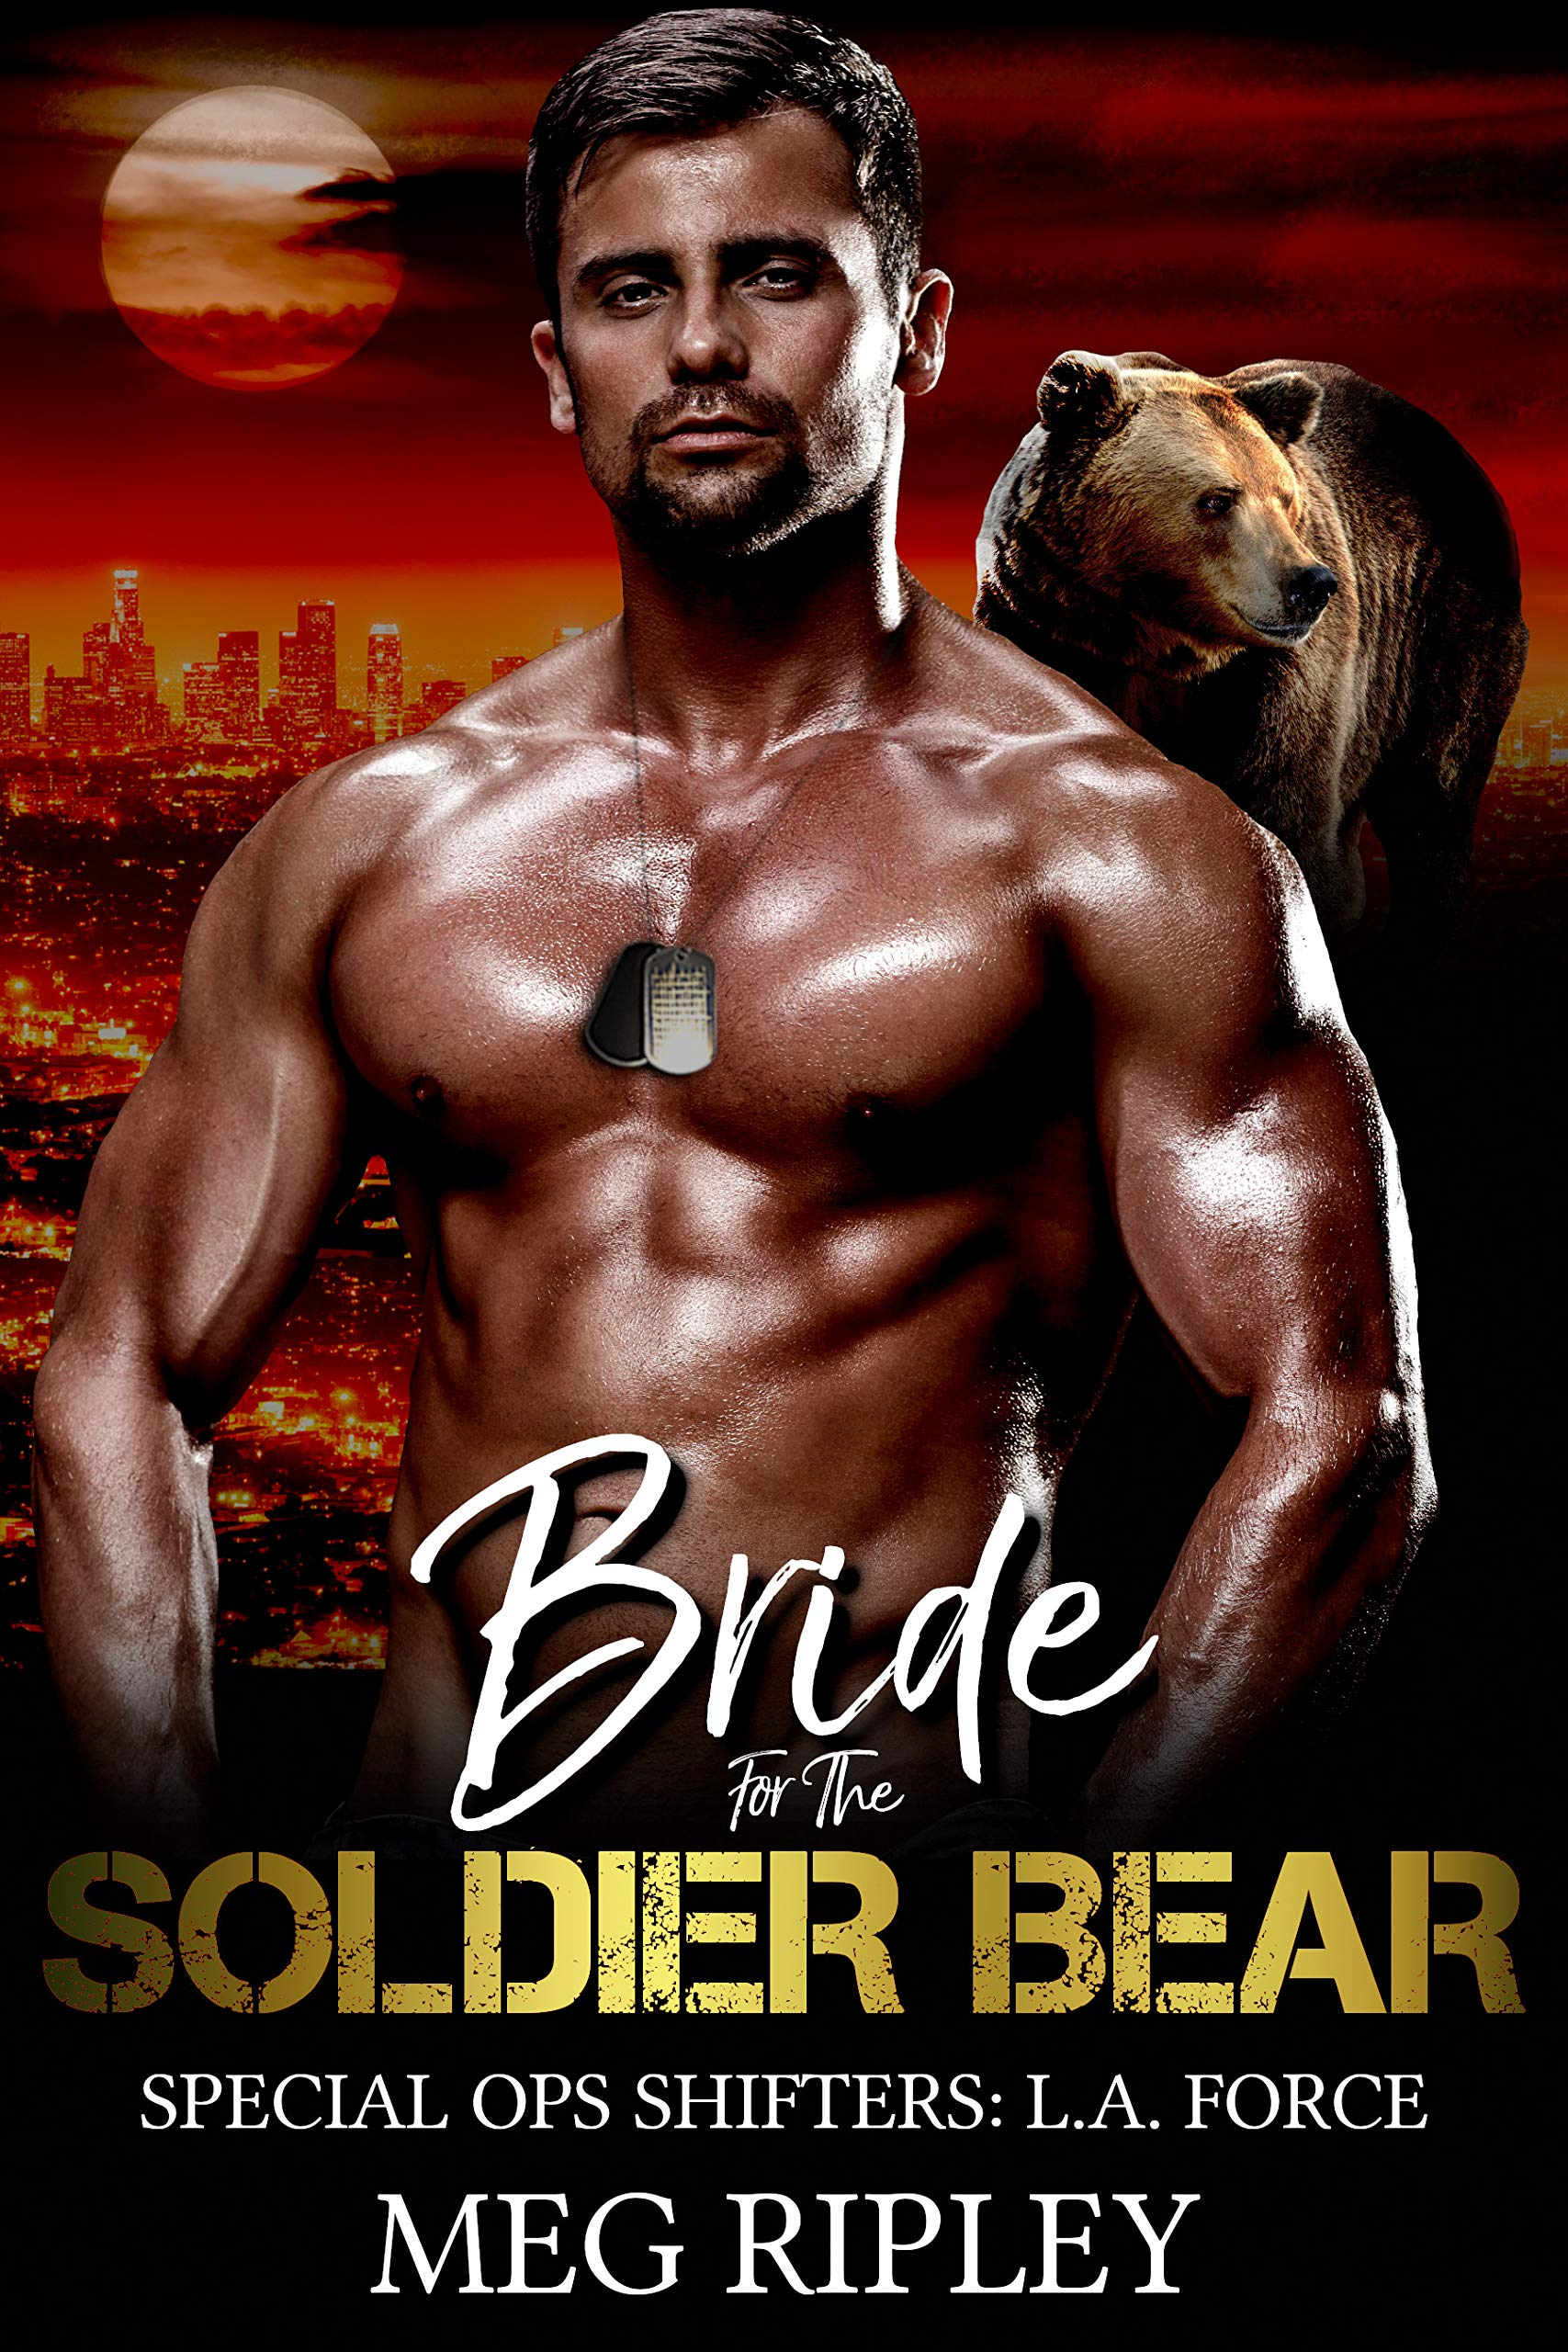 Bride For The Soldier Bear (Special Ops Shifters: L.A. Force #5)